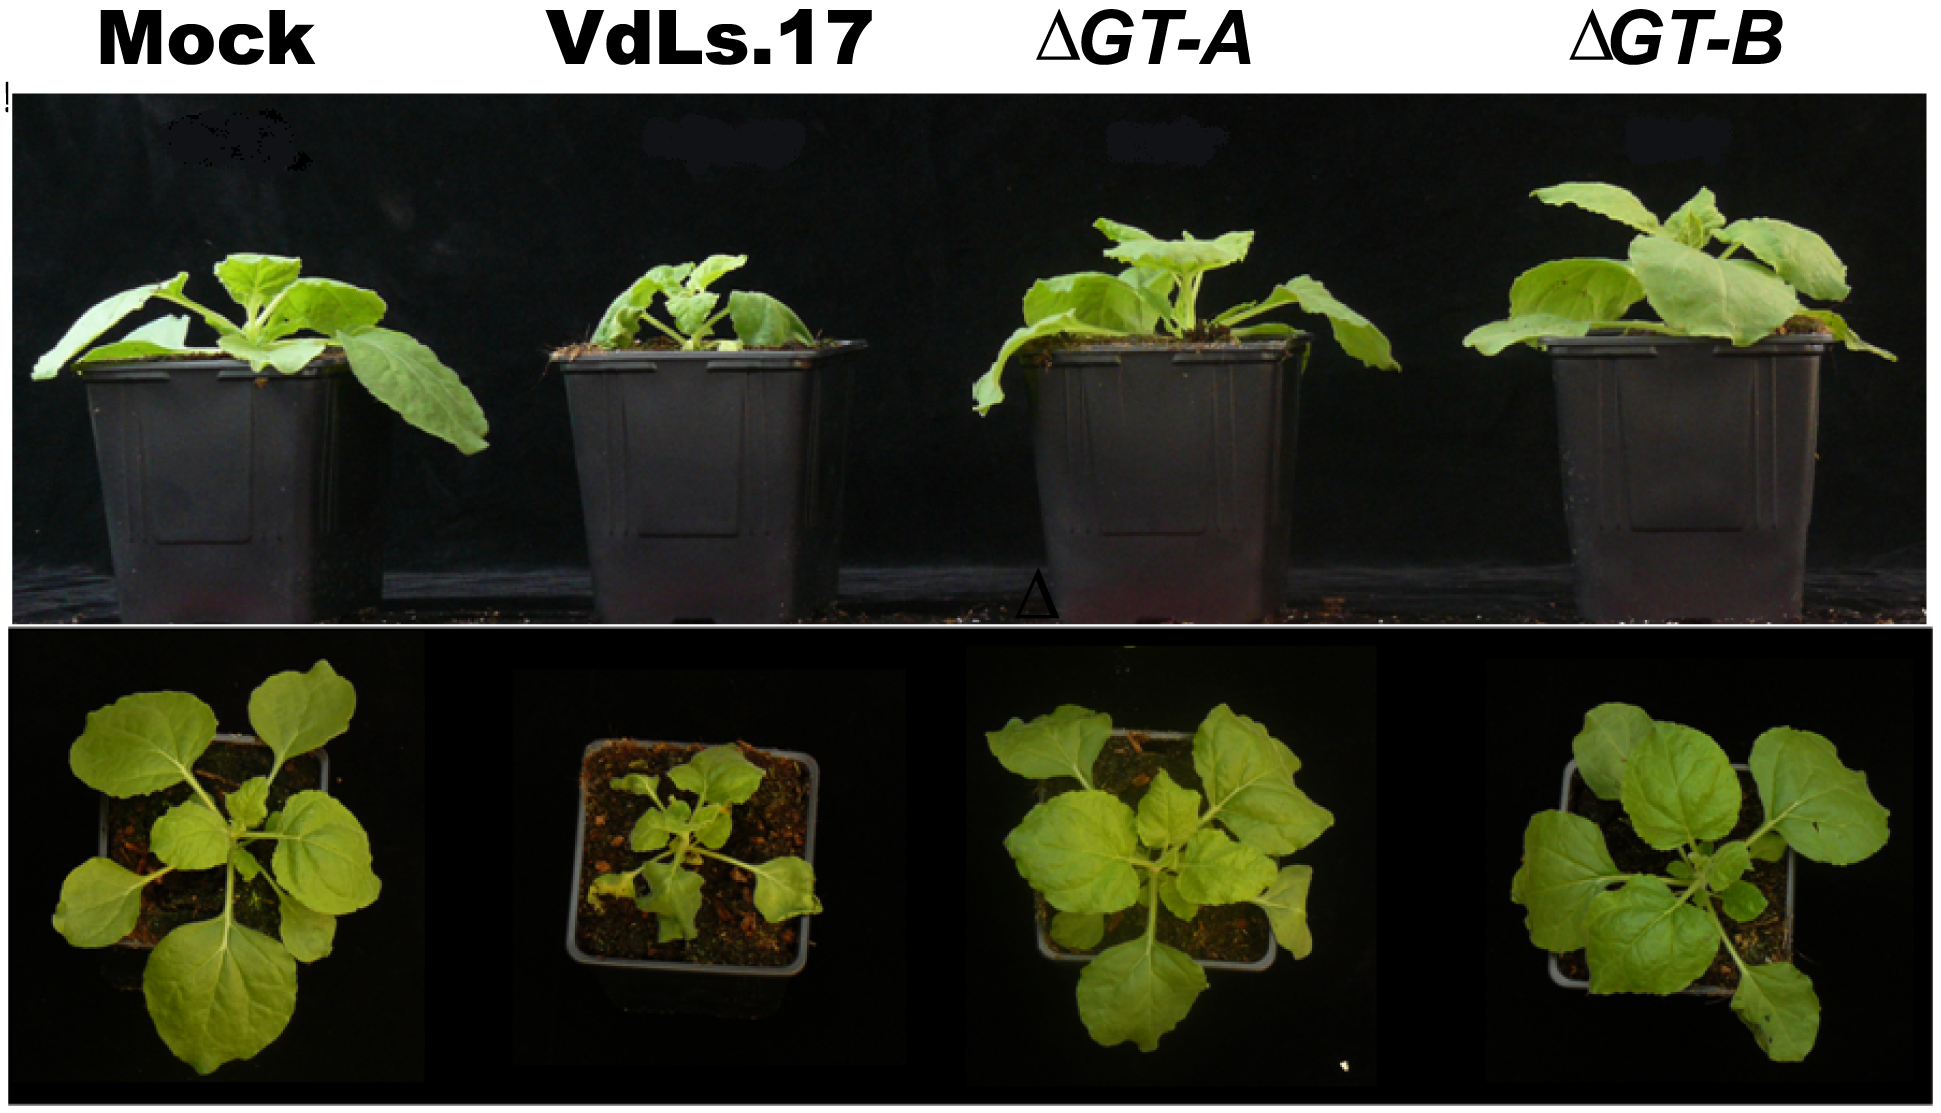 Targeted knock-out of the putative glucan glucosyltransferase in <i>Verticillium dahliae</i>, strain VdLs.17, results in reduced fungal virulence on <i>Nicotiana benthamiana</i>.